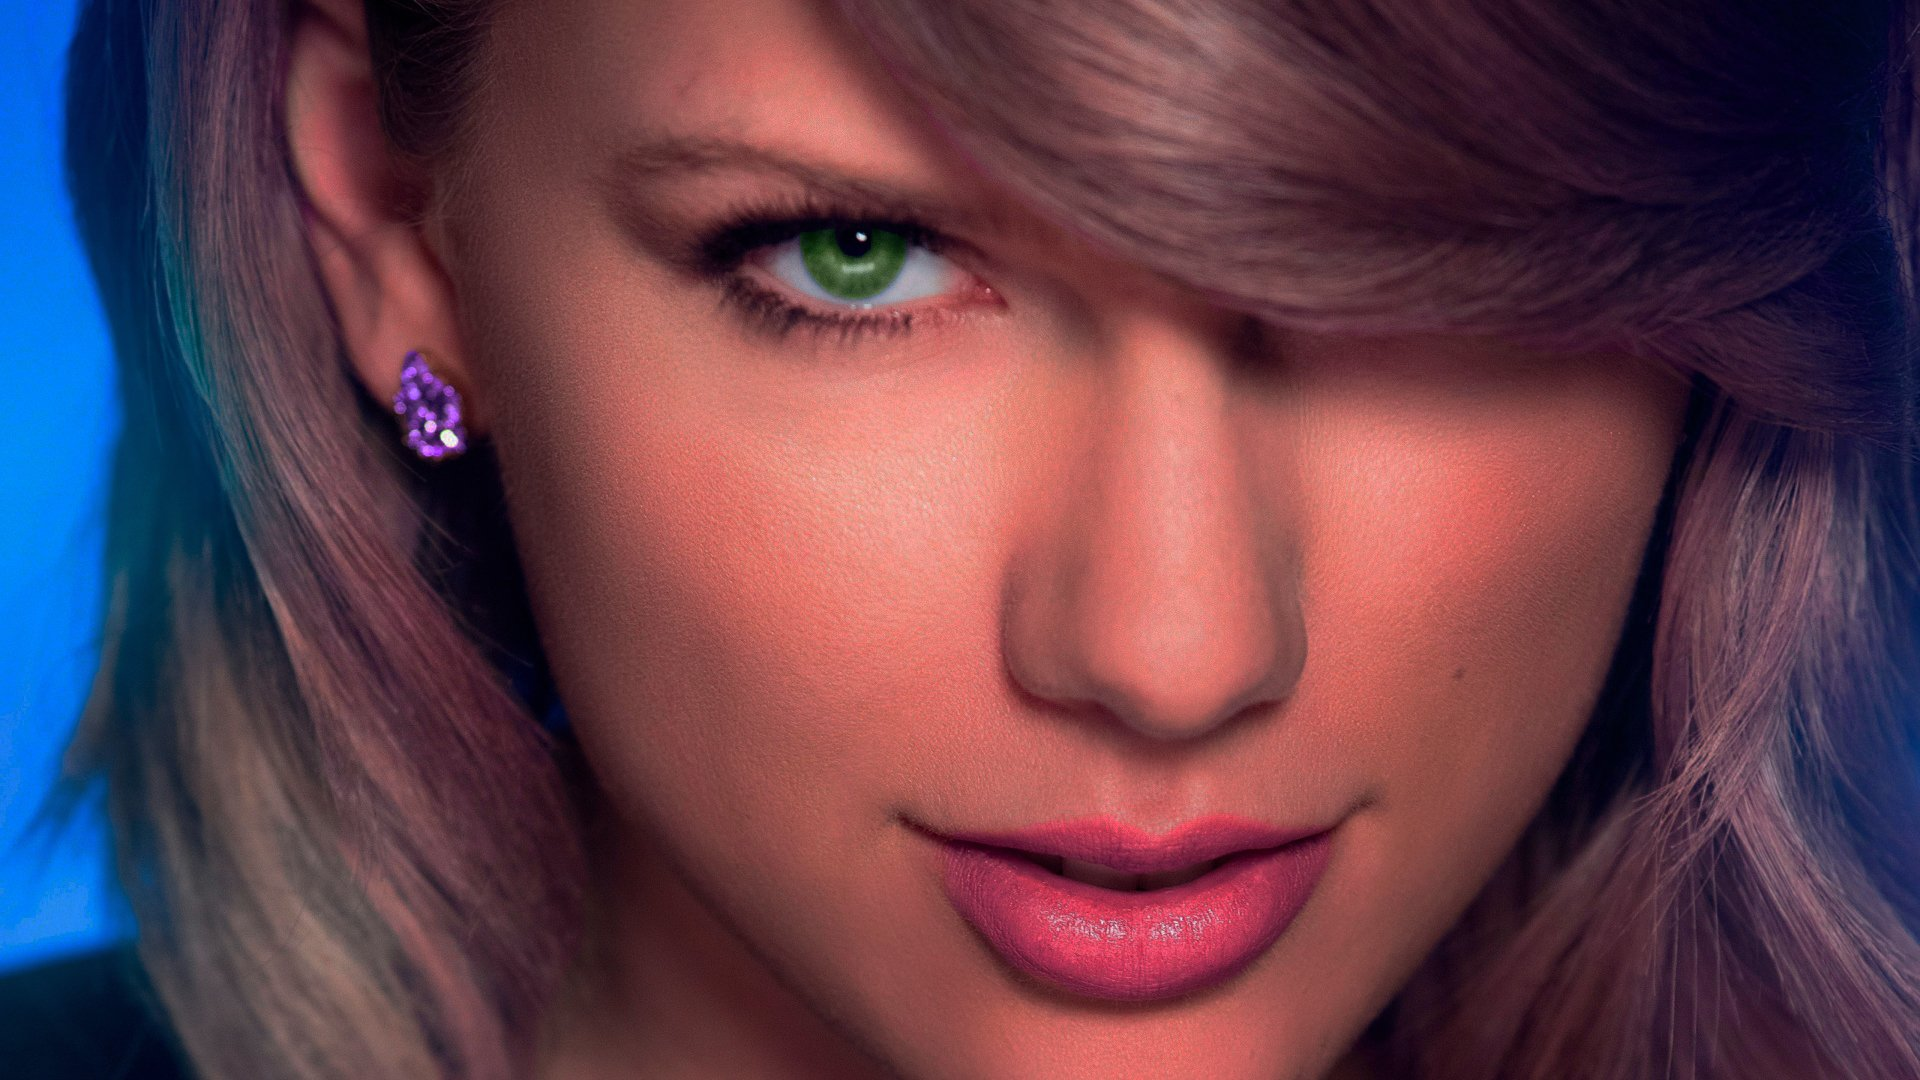 taylor swift green eye with blueish tint edit full hd